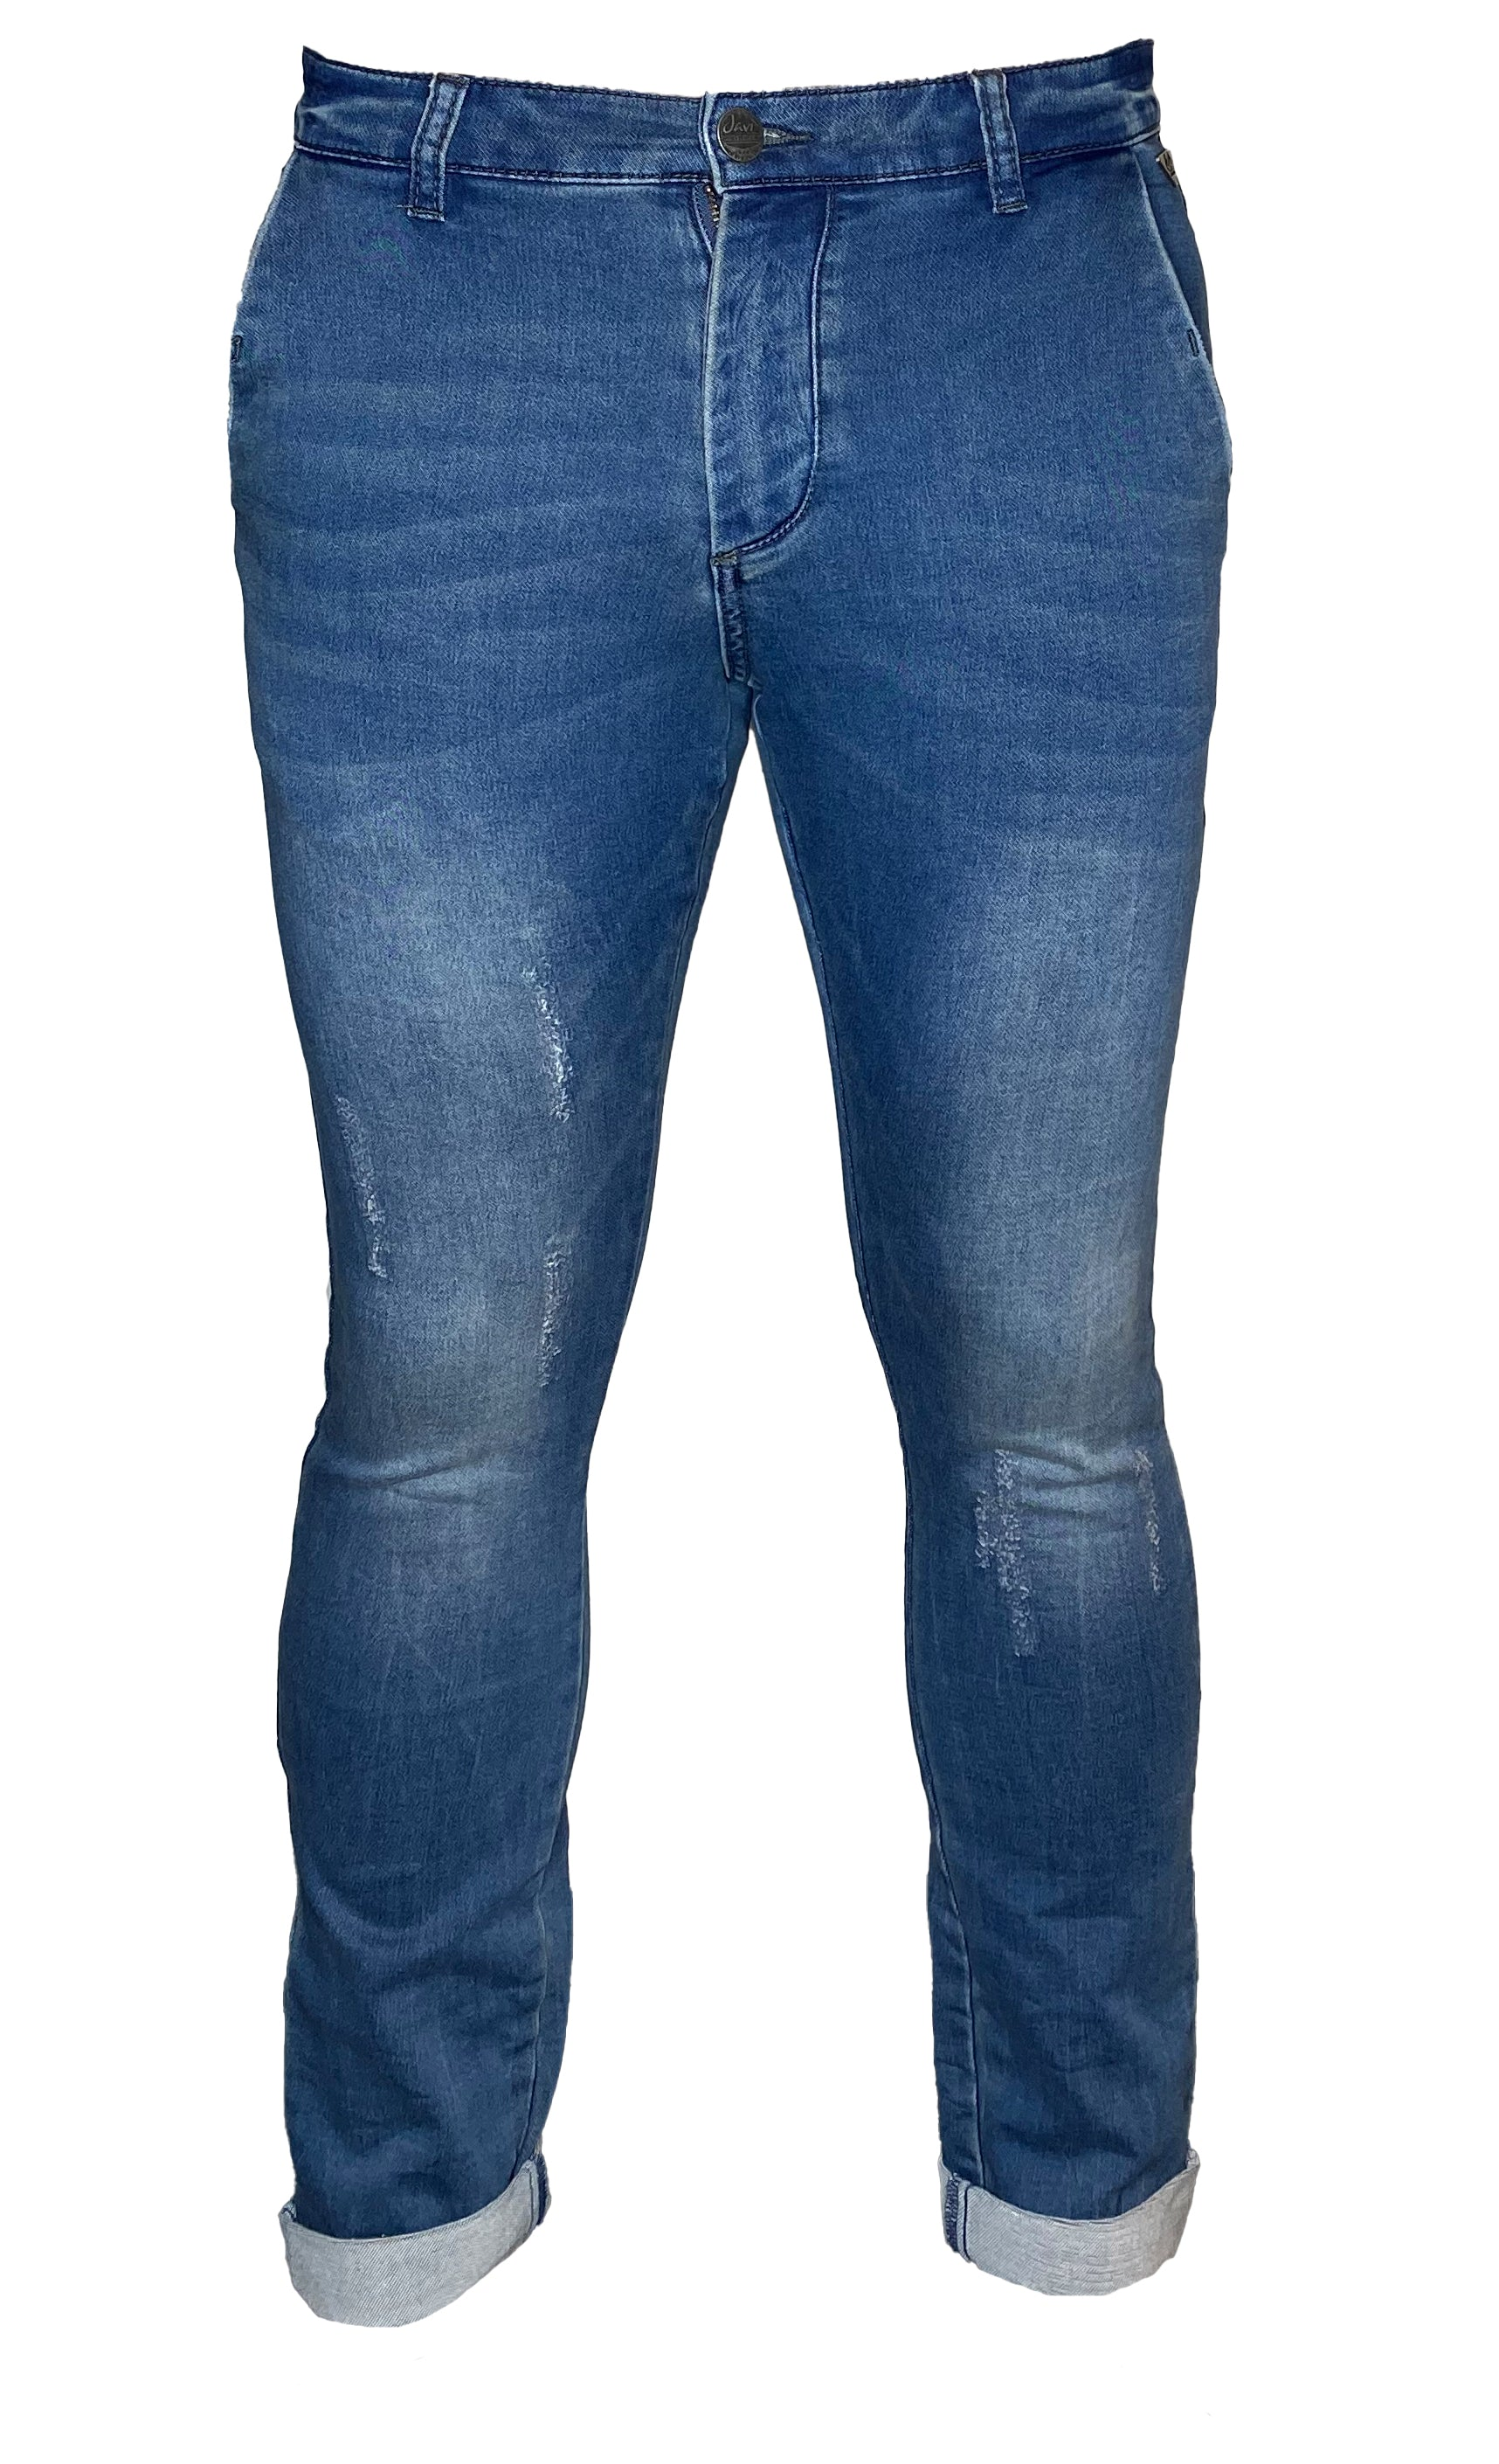 Javi by Buena Vista Herren Jeanshose Marius Sweat Denim Skinny